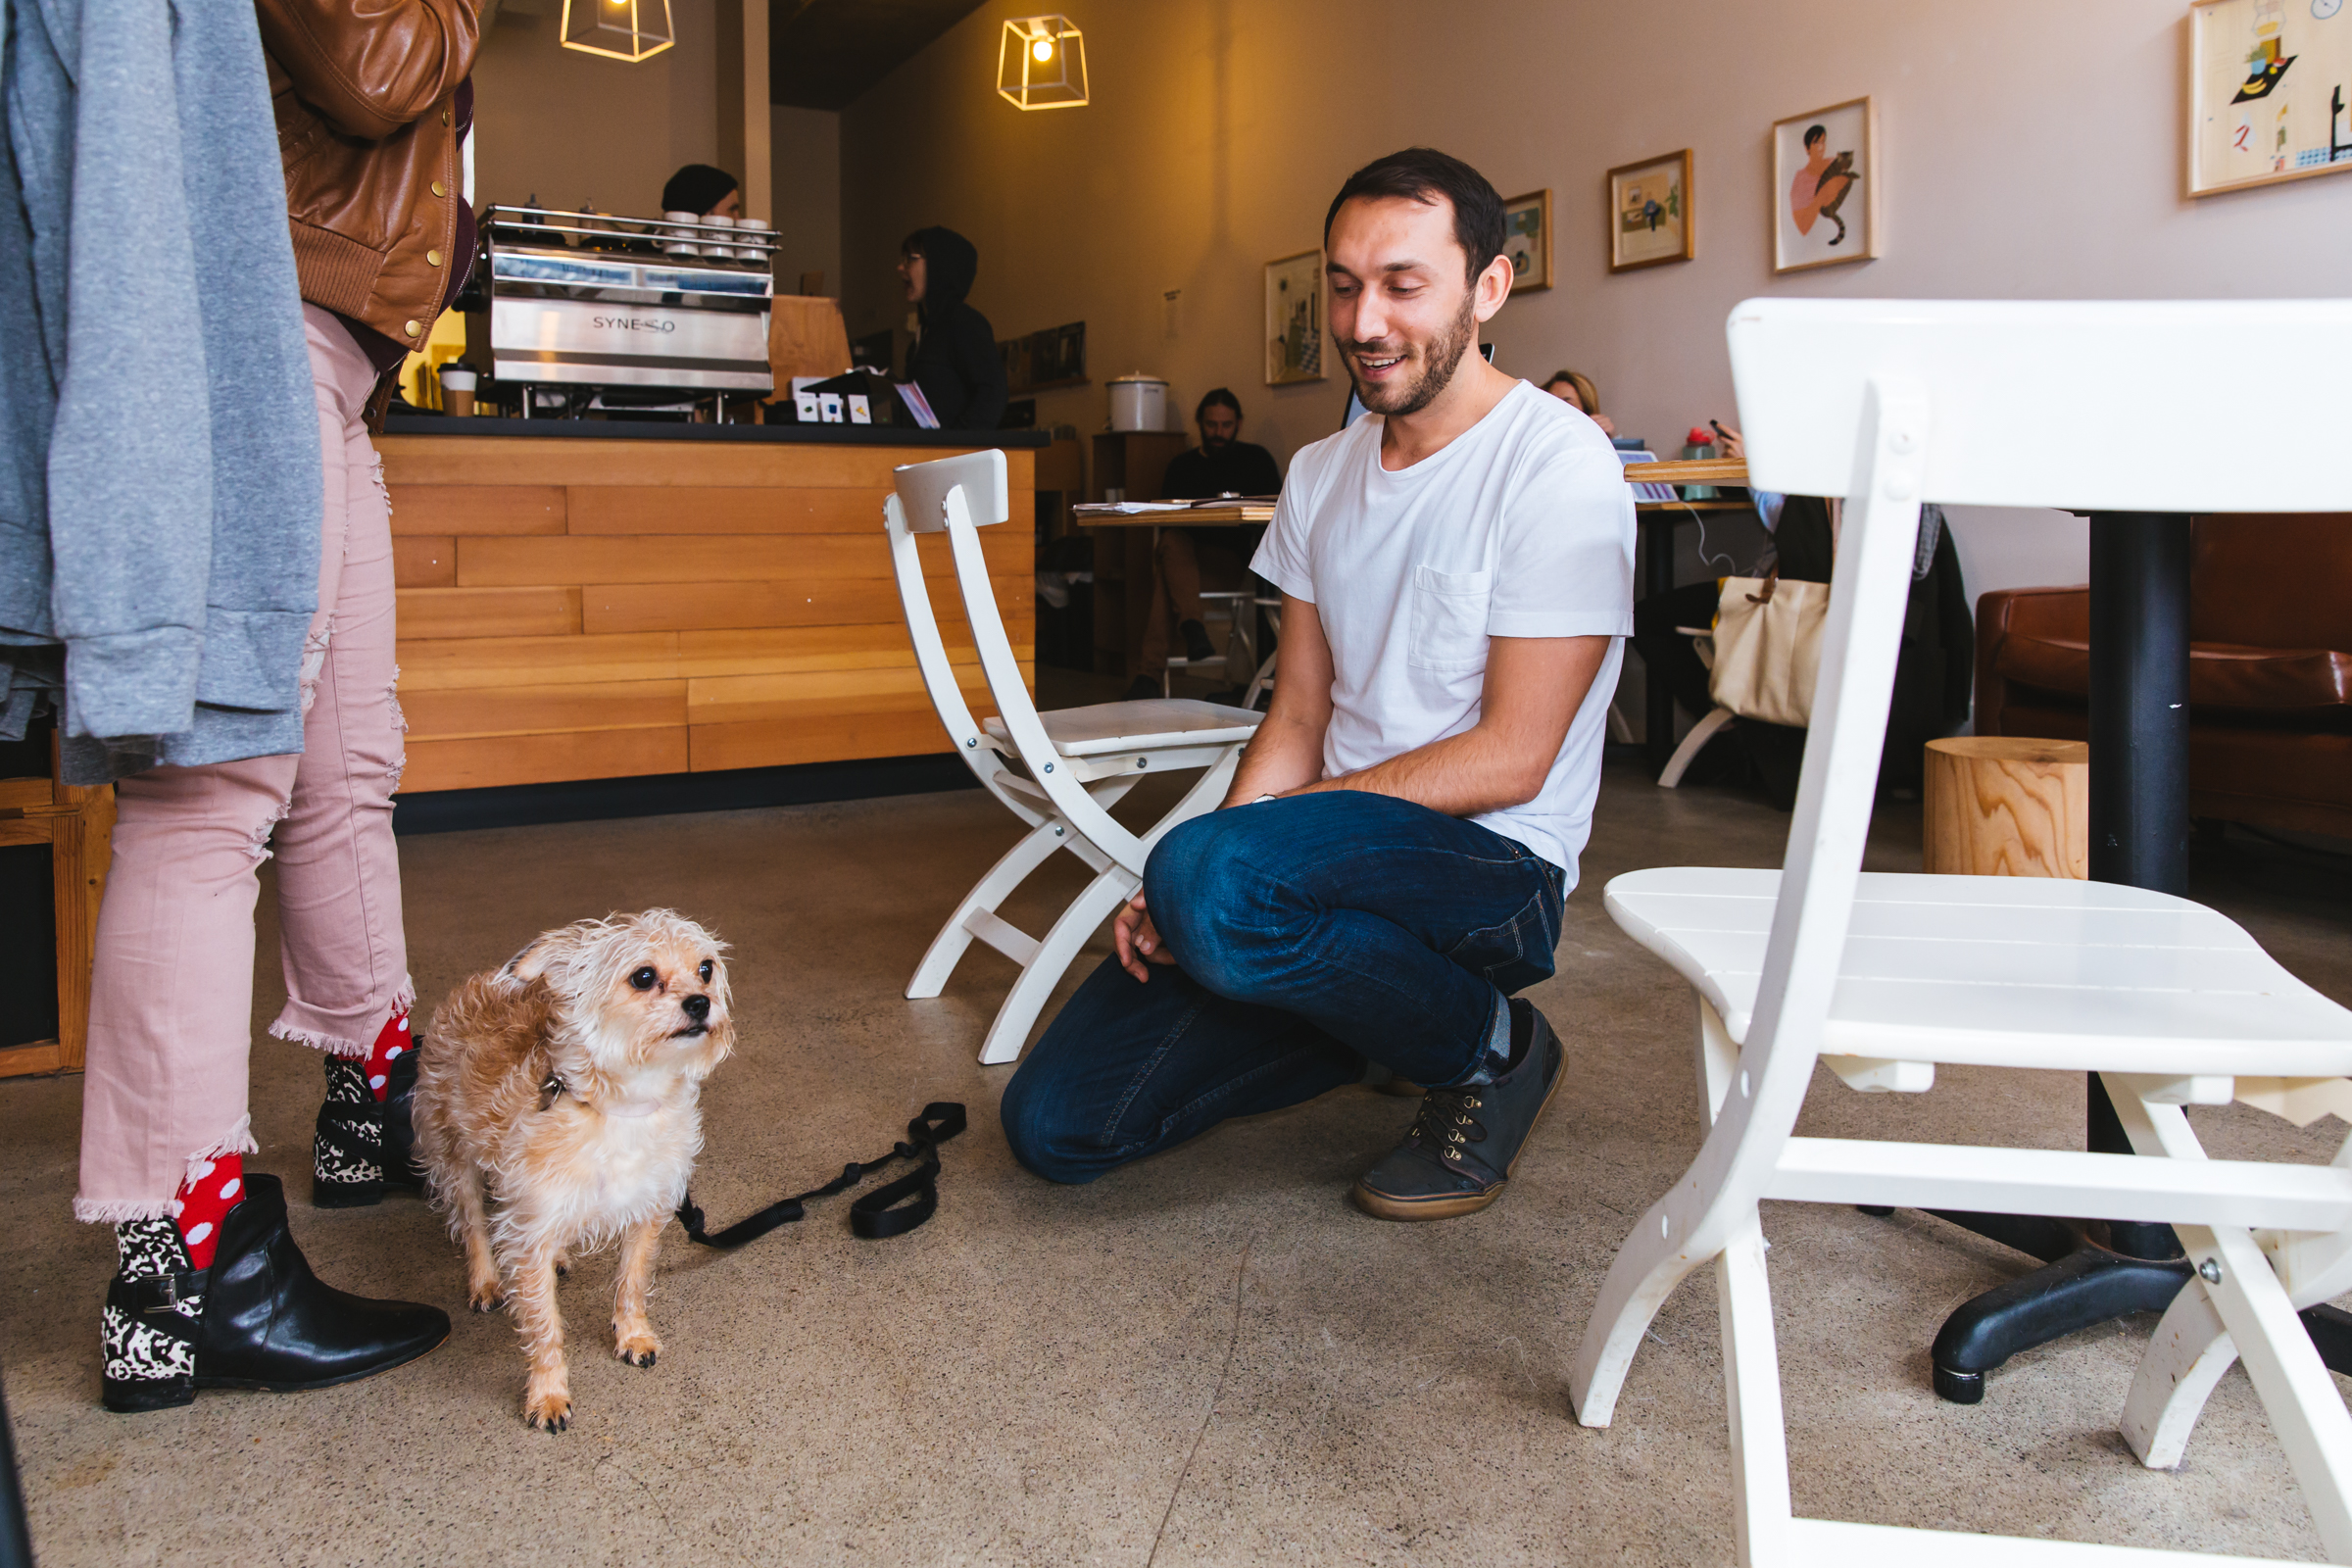 Nearly ten years into owning one of Seattle's favorite independent coffee shops, Zack Bolotin is more than a successful businessman and coffee lover. His shop, Porchlight Coffee & Records, is a Capitol Hill favorite on the edge of the Pike/Pine corridor, where he doles out espresso and cold brew alongside hand-selected vinyl in a bright, welcoming space. But get to know the man behind the counter and you'll find an artist, a curator, a record label, and more. (Image: Sunita Martini / Seattle Refined)